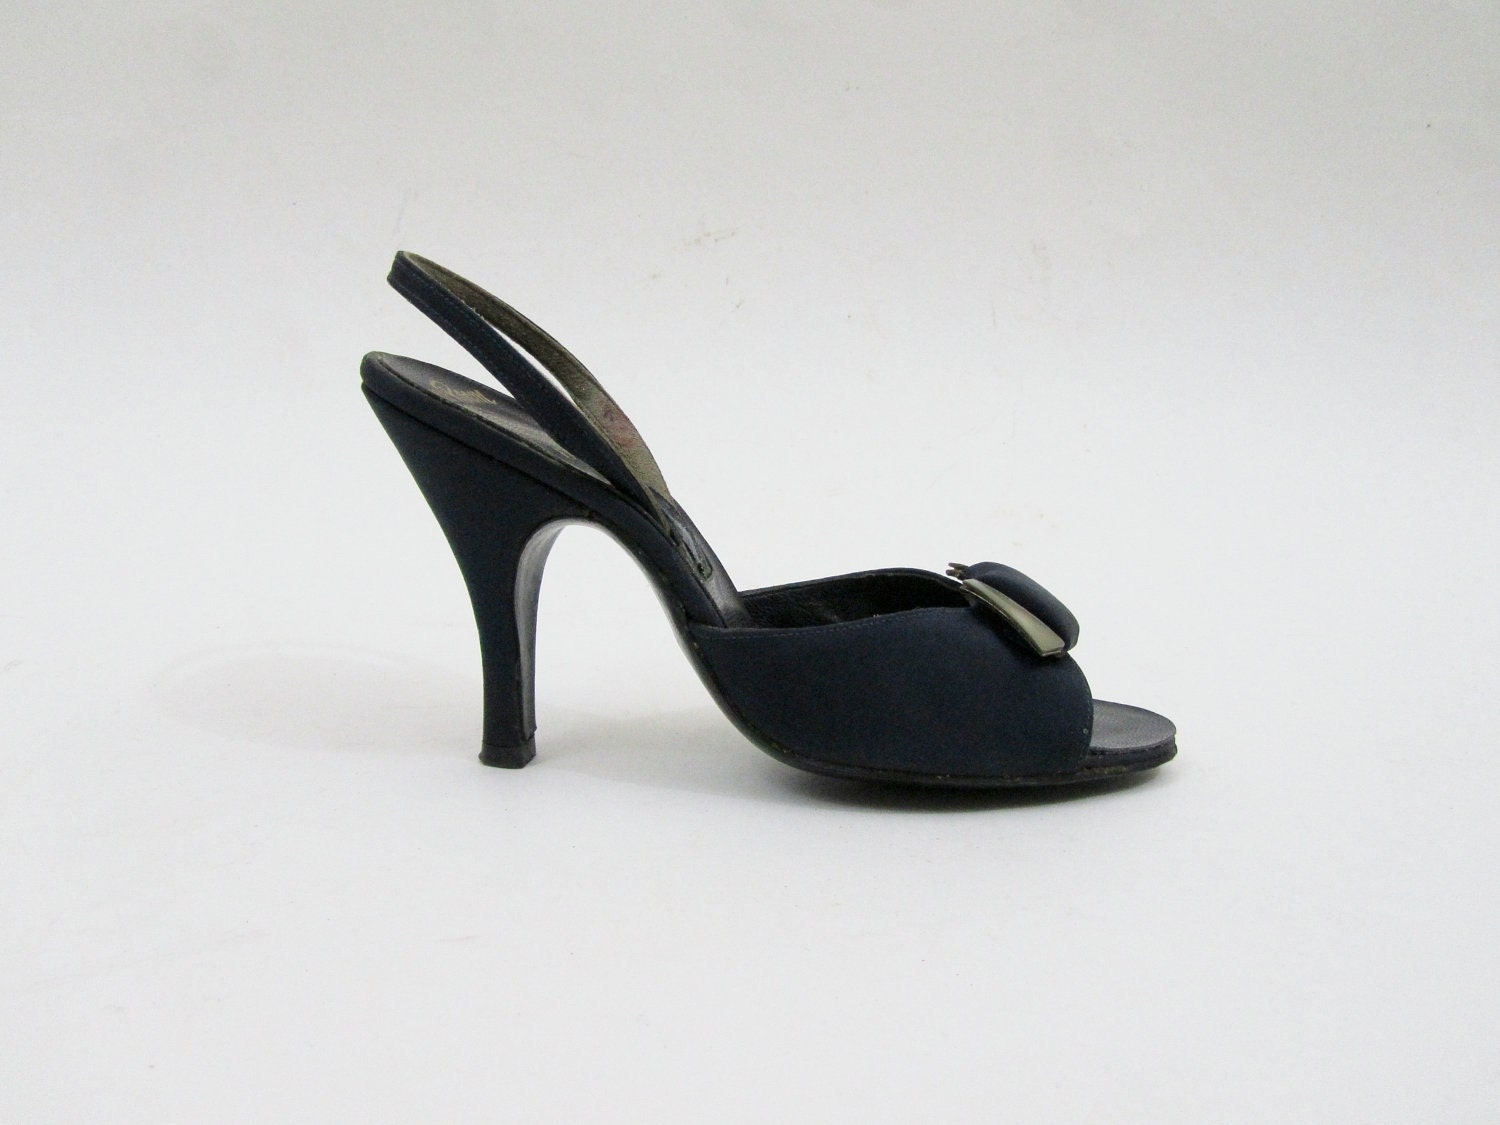 1950s Dress Shoes - Navy Blue Peeptoe / Slingback Heels with Mother of